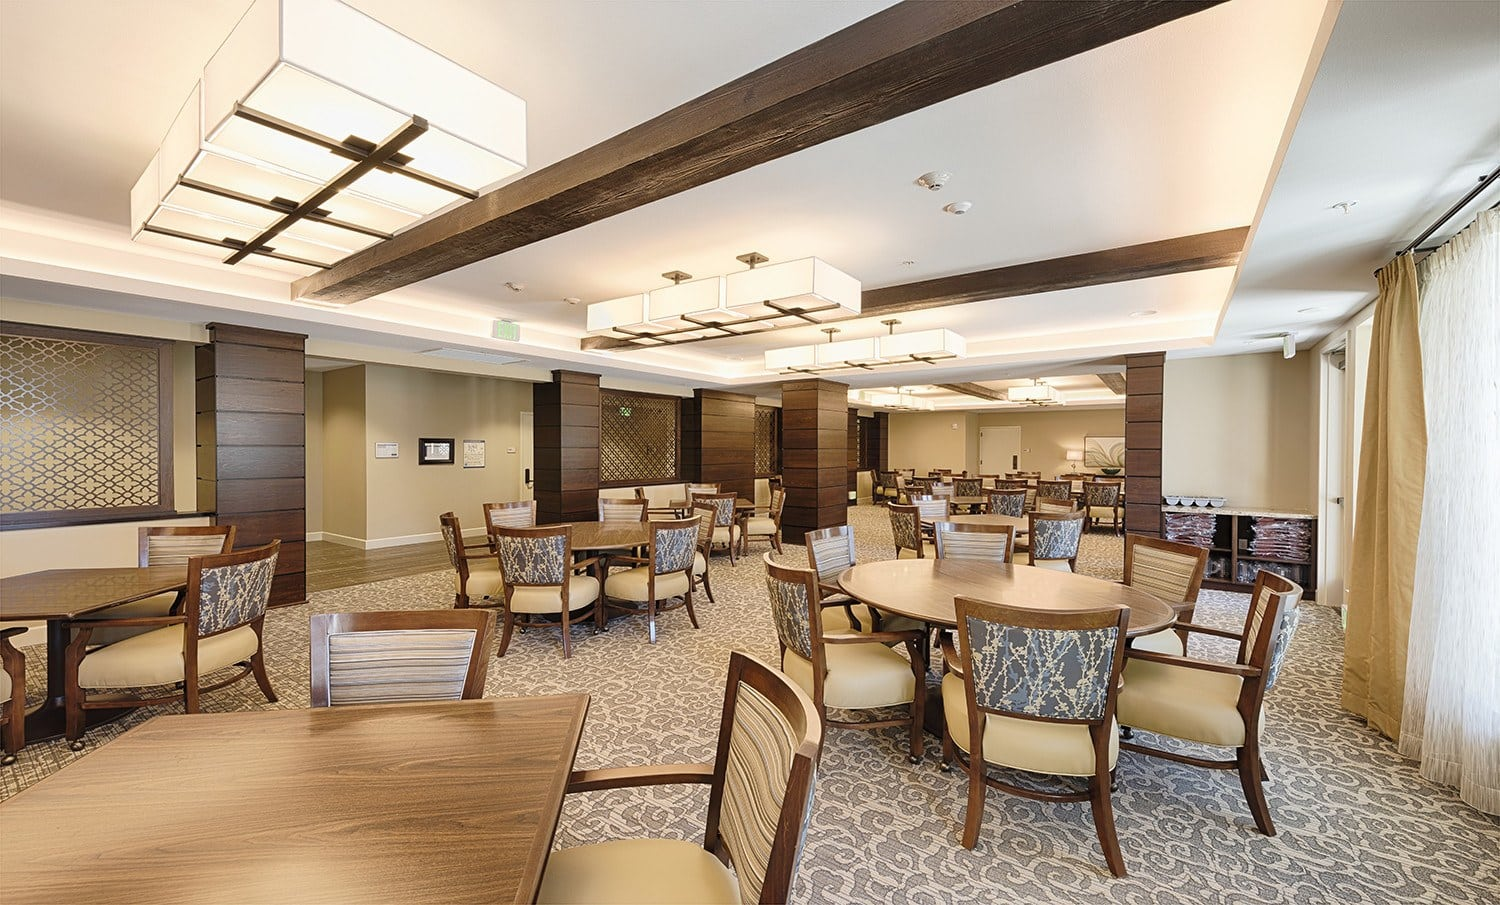 Enjoy a delicious meal in Kingston Bay Senior Living's dining room.